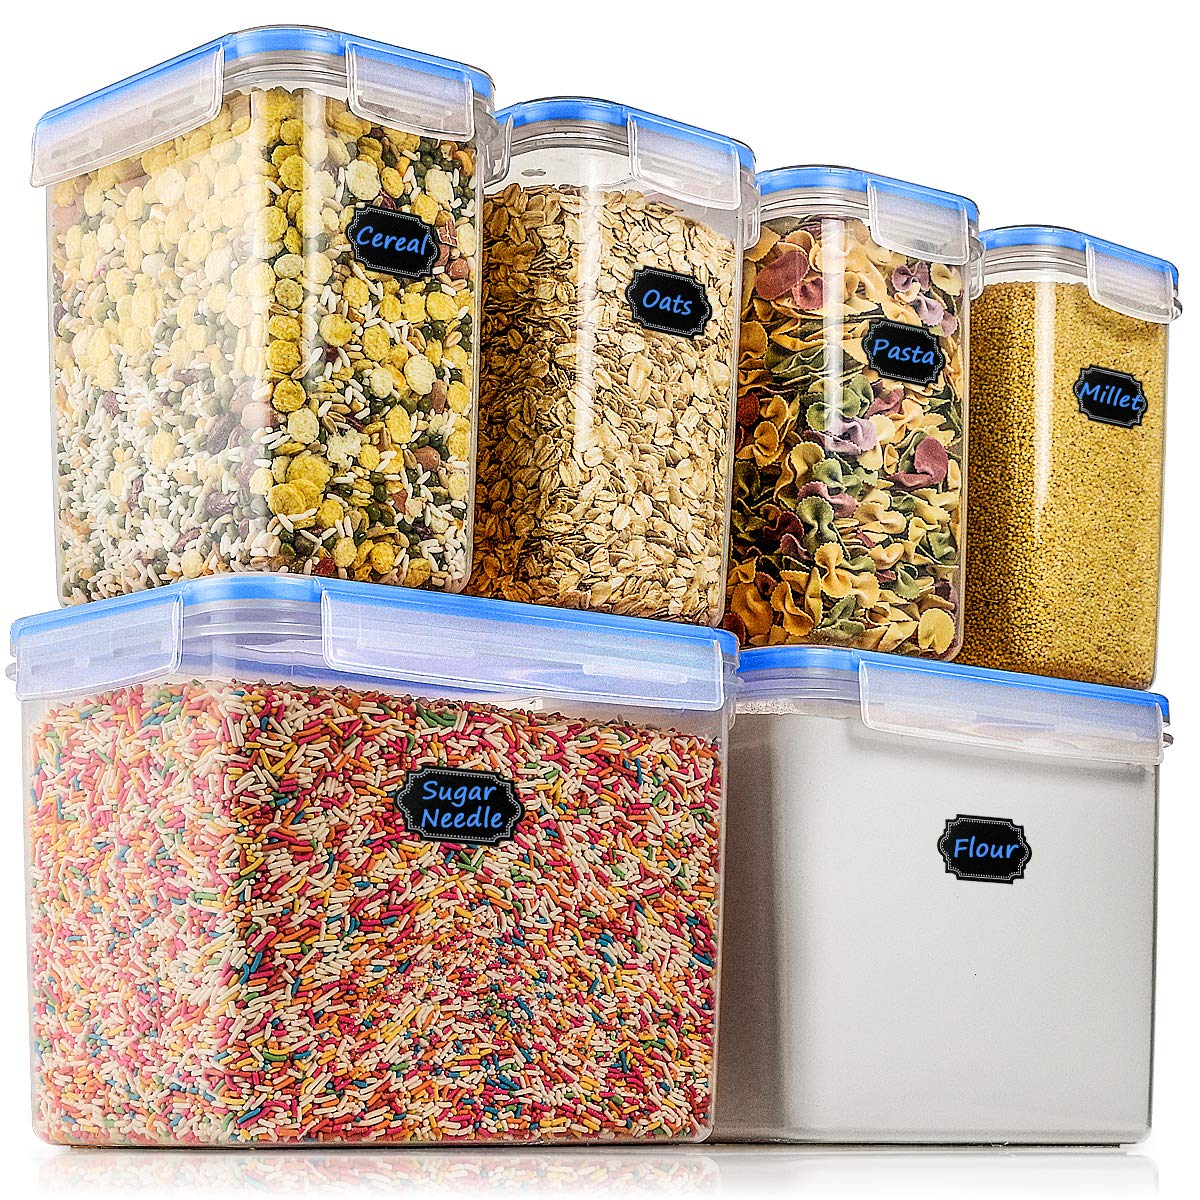 Airtight Food Storage Containers   Wildone Cereal Dry Food Storage Container  Set Of 6, Leak Proof BPA Free, With 1 Measuring Cup 20 Chalkboard Labels 1  ...